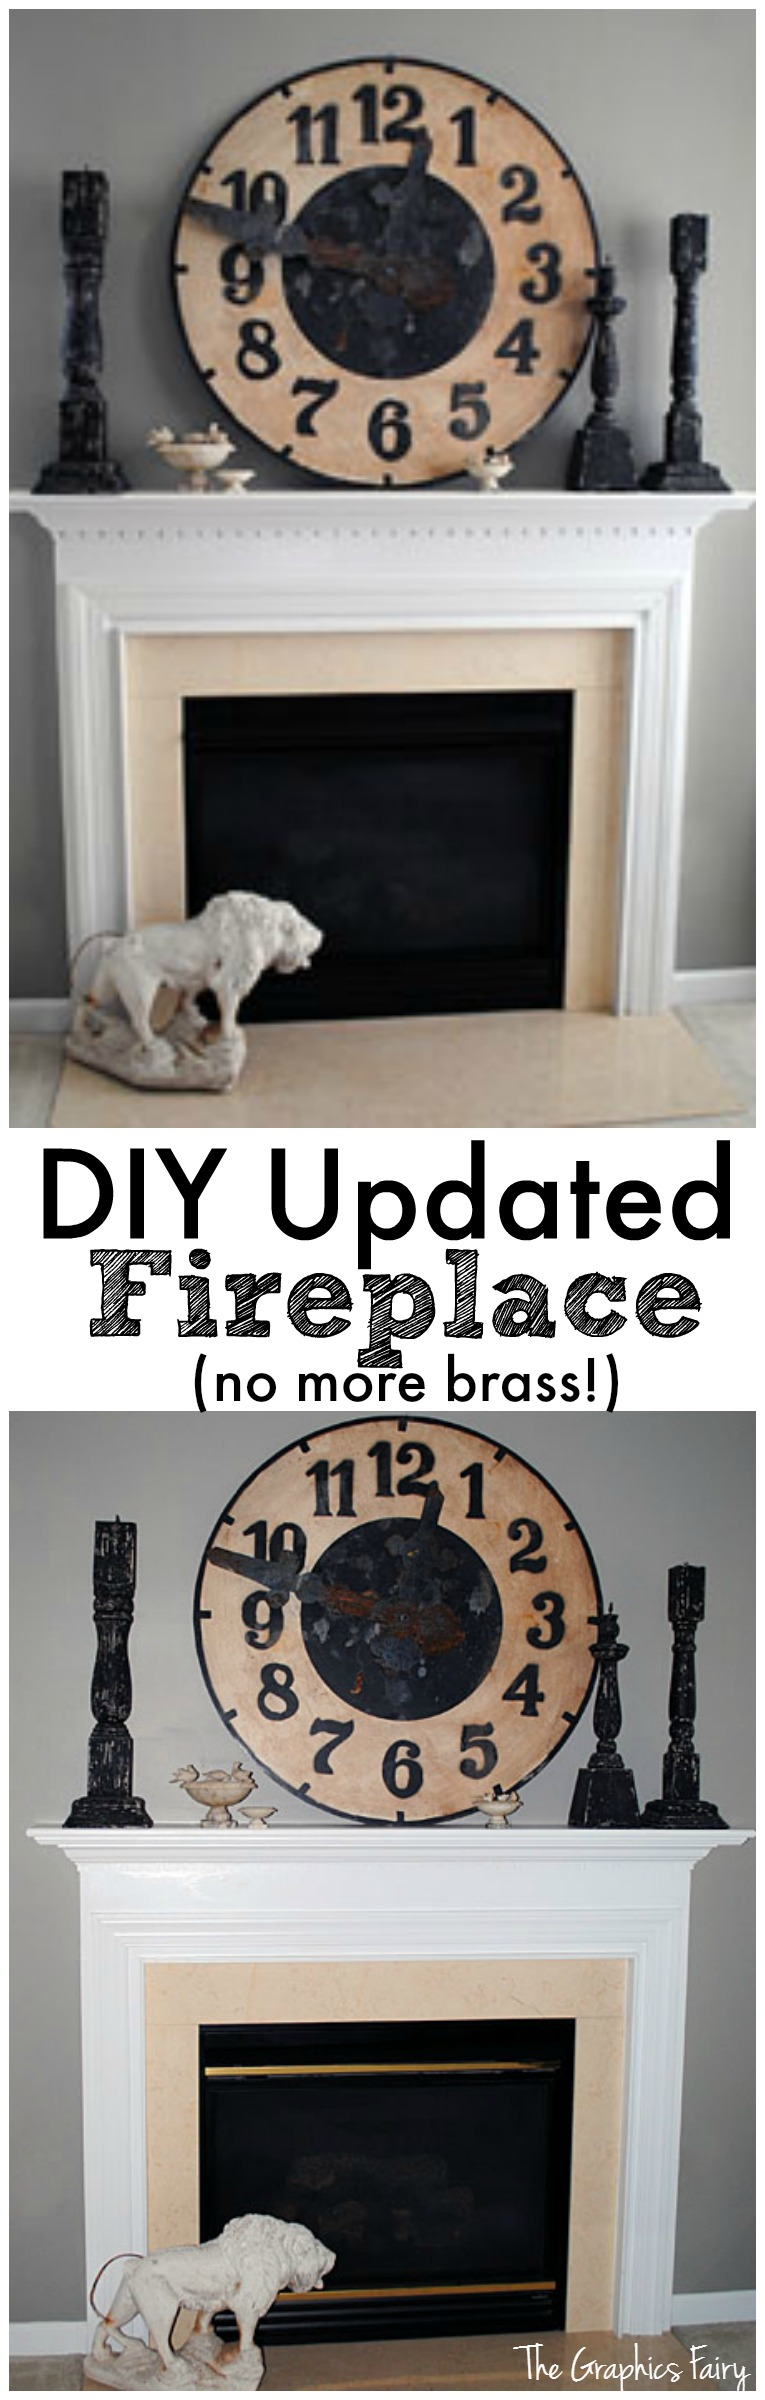 DIY Updated Fireplace - No more brass - by The Graphics Fairy